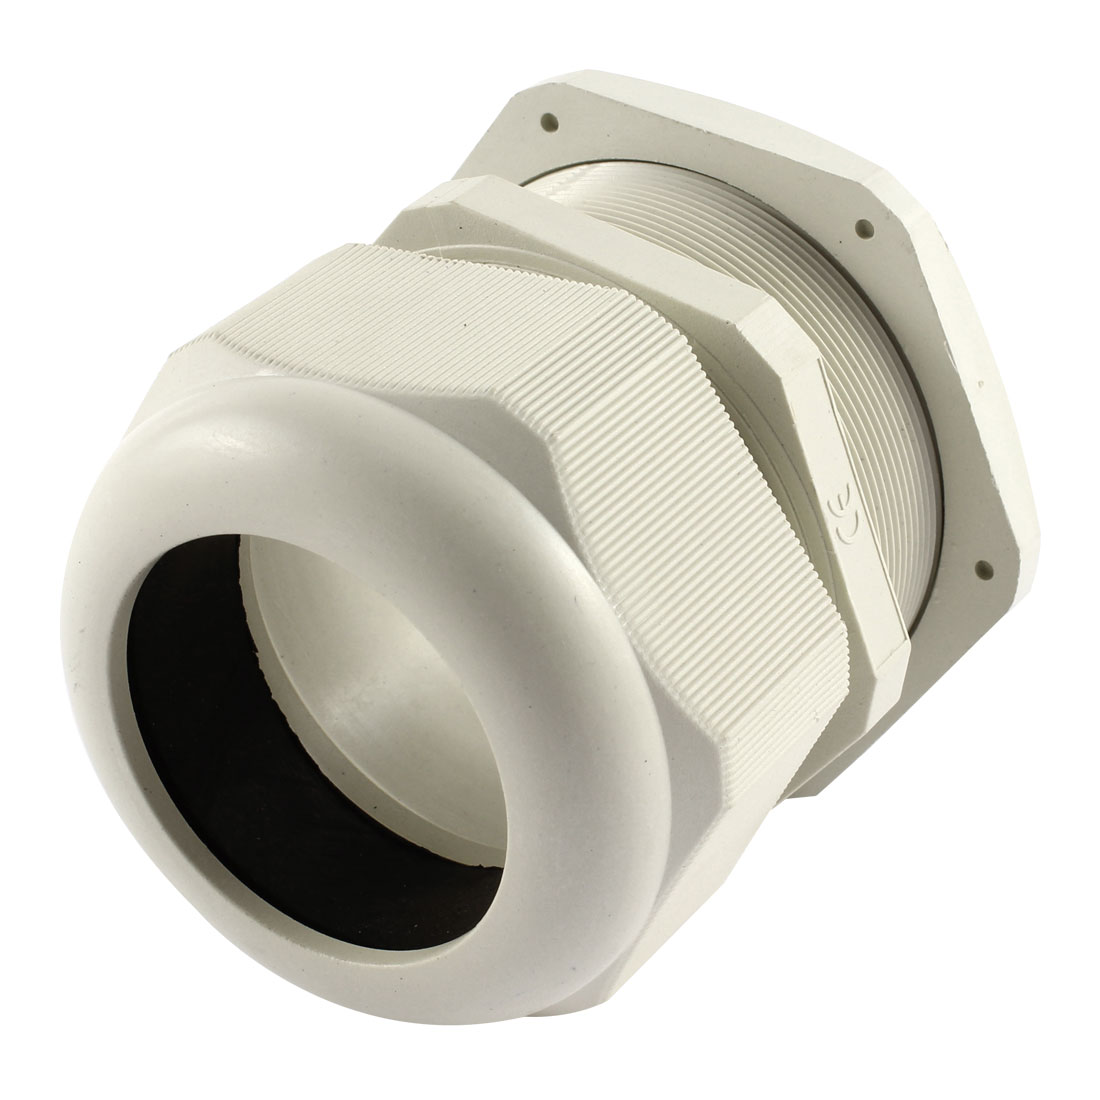 White Plastic PG63 42-50mm Wire Connector Waterproof Cable Gland